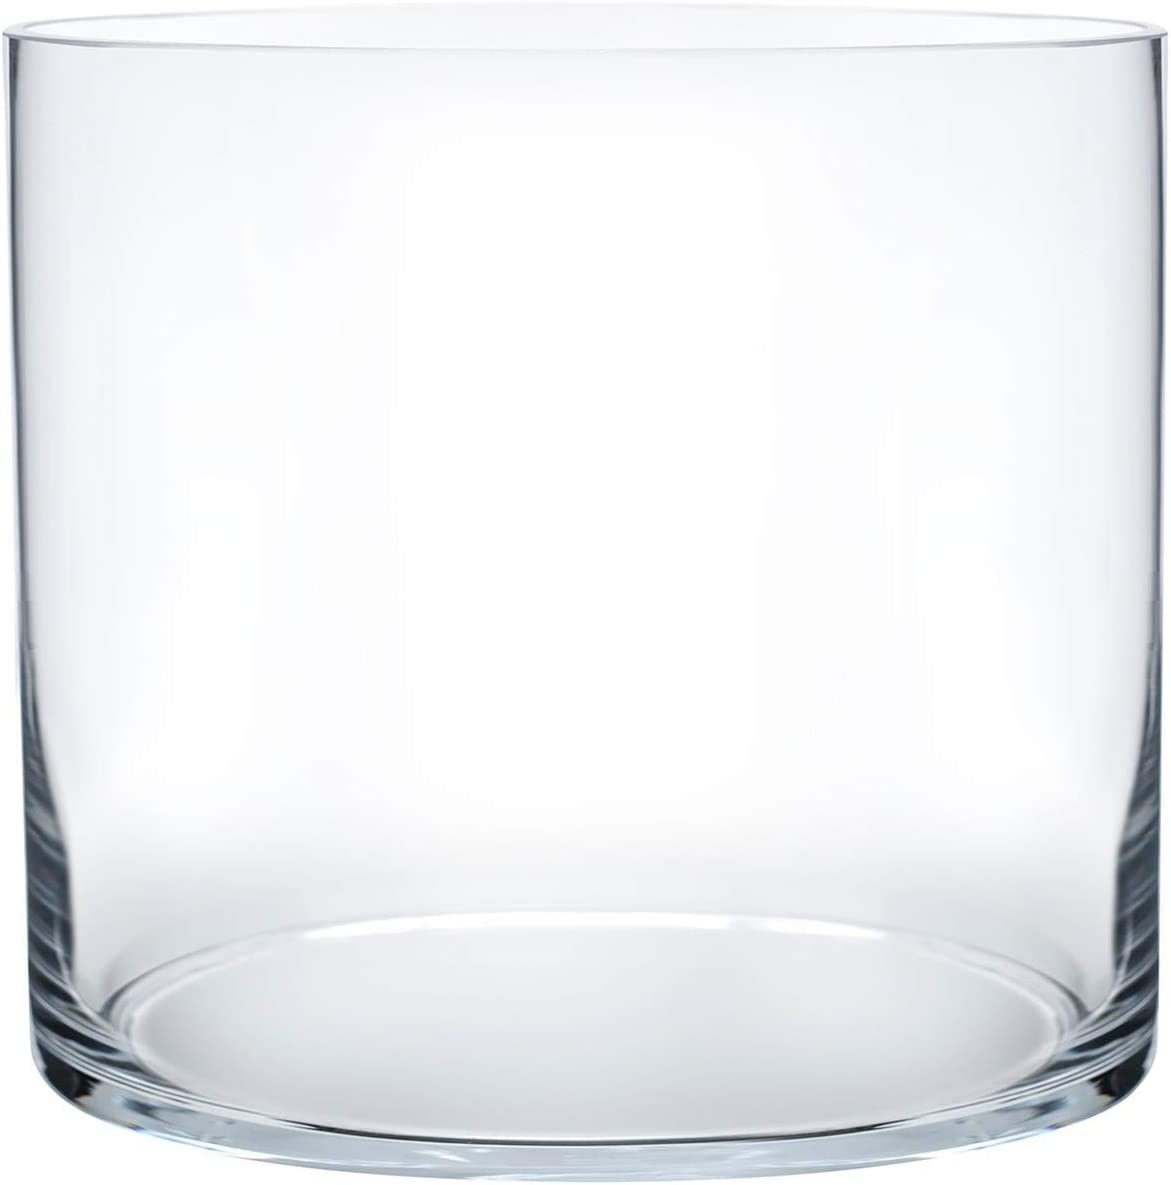 Royal Imports Flower Glass Vase Decorative Centerpiece for Home or Wedding Cylinder Shape 4 Tall 4 Opening Clear